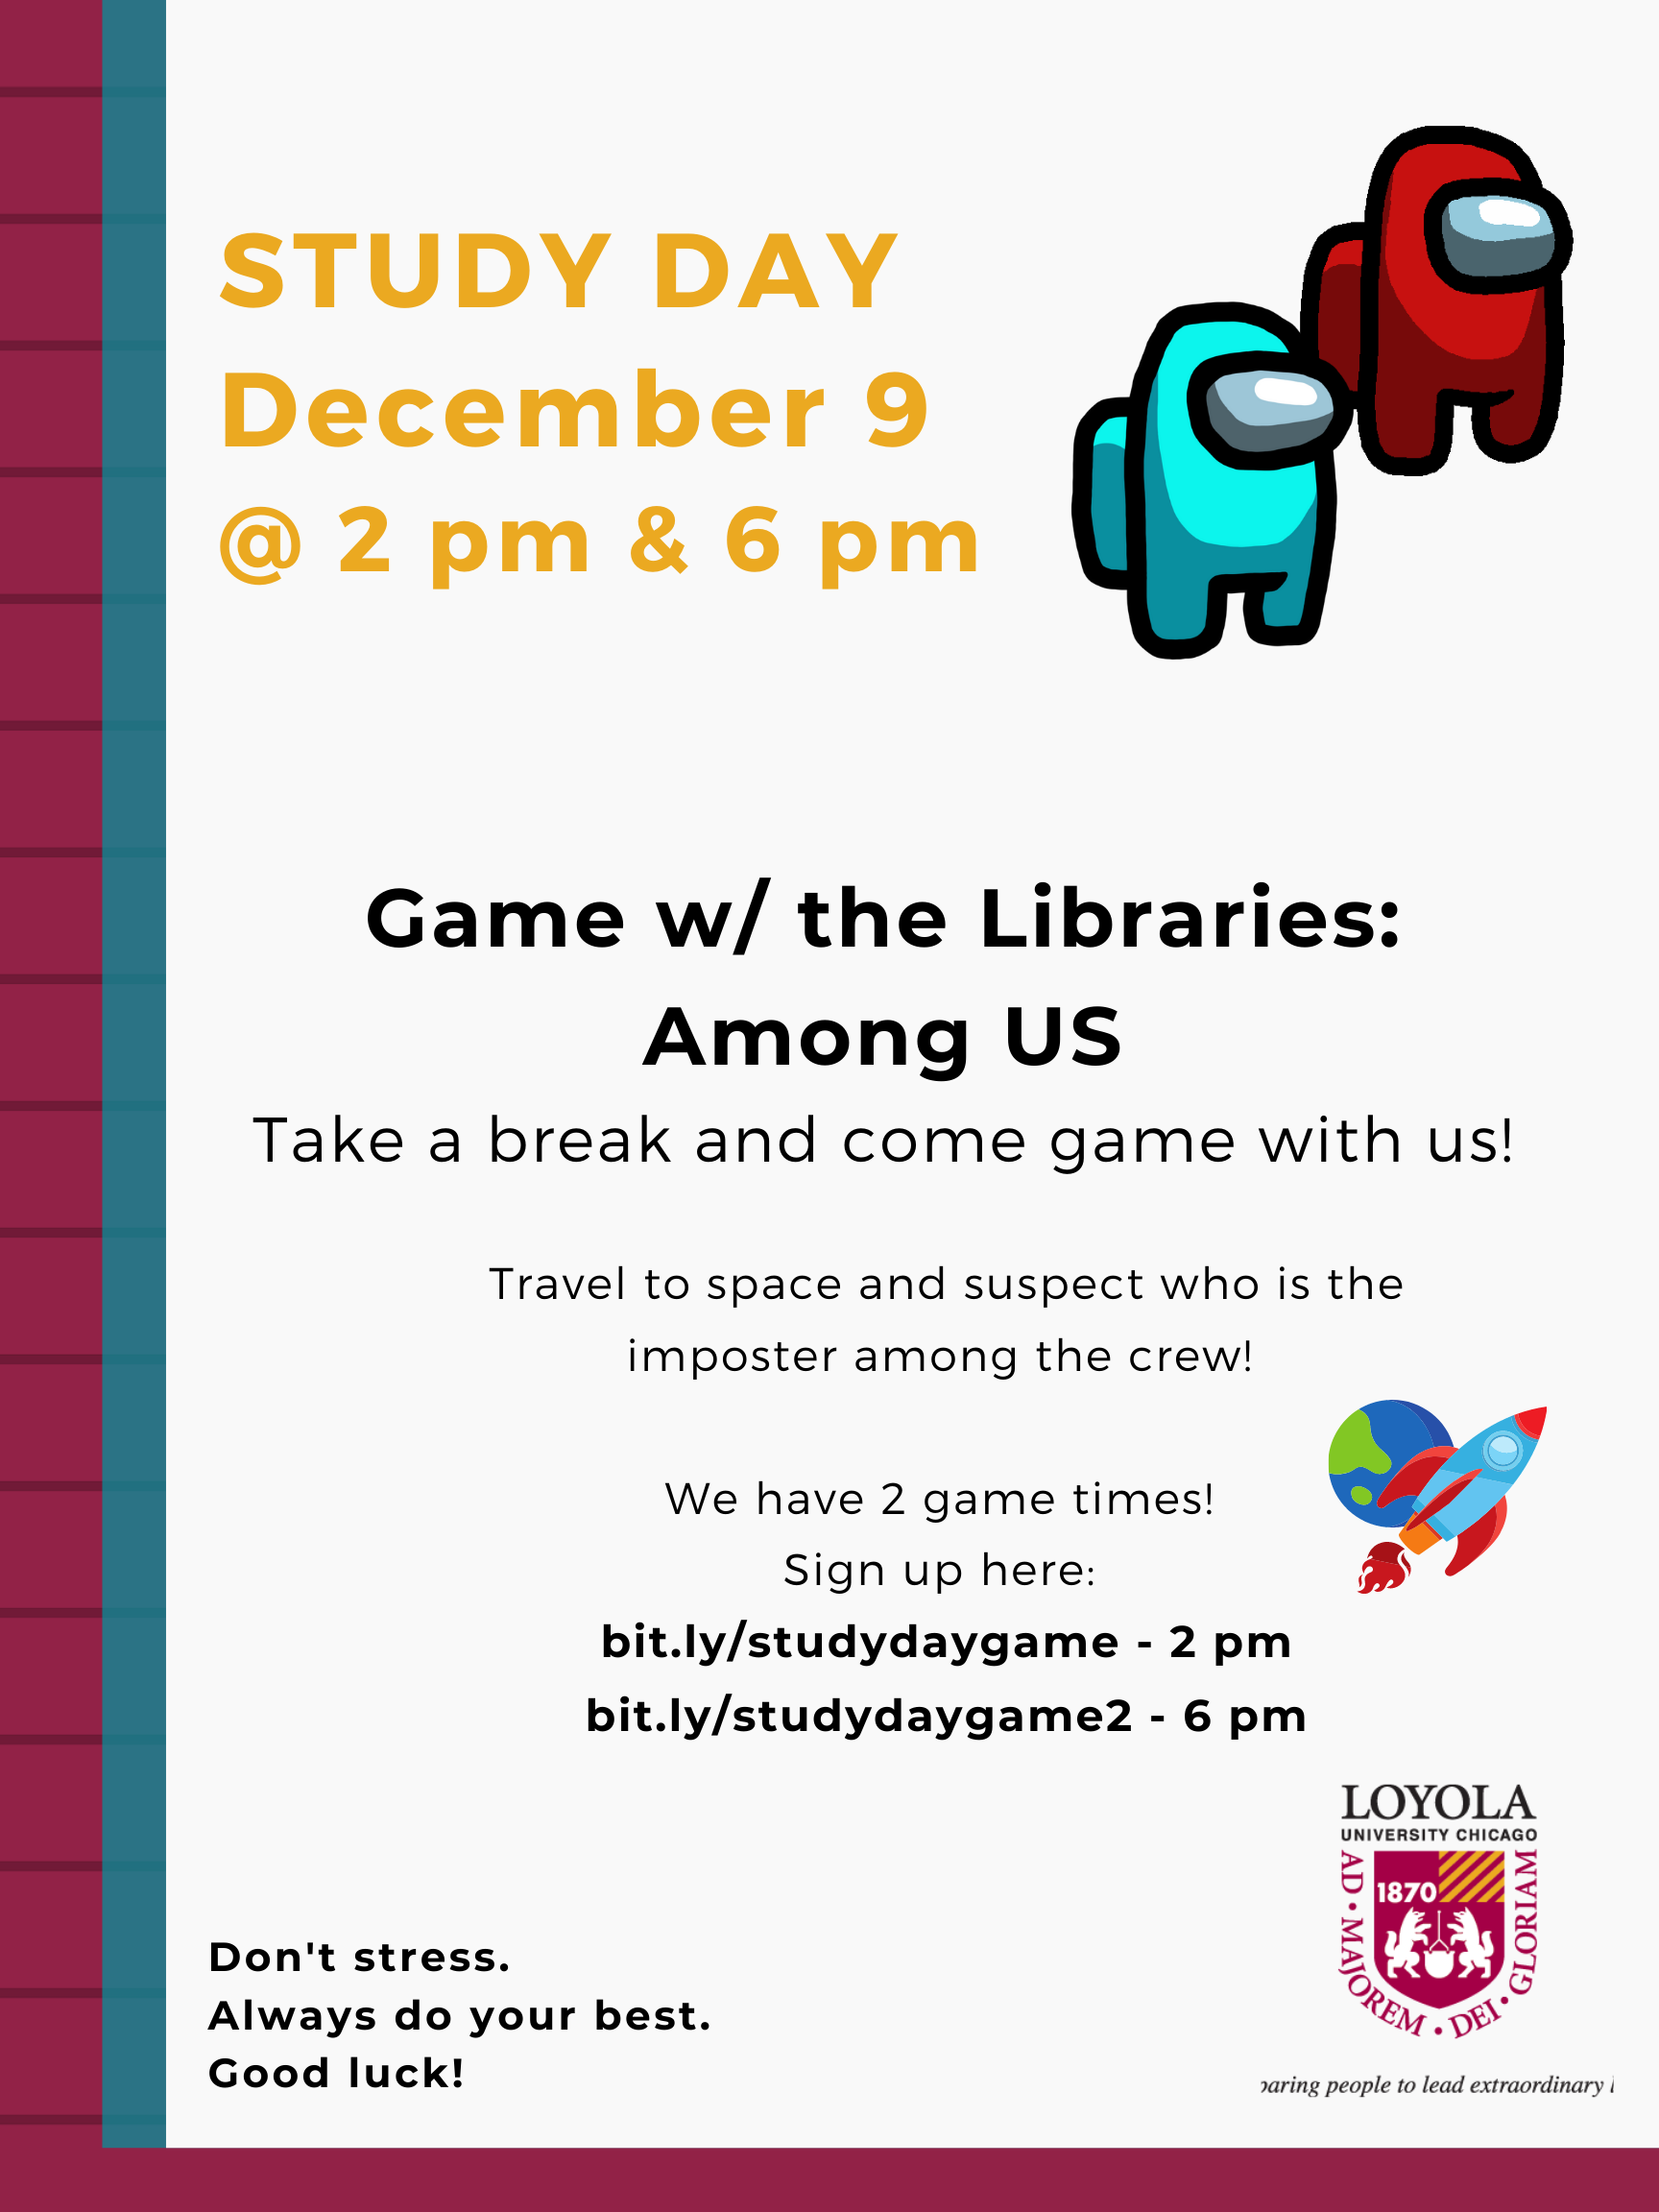 Study Day: Game w/ the Libraries